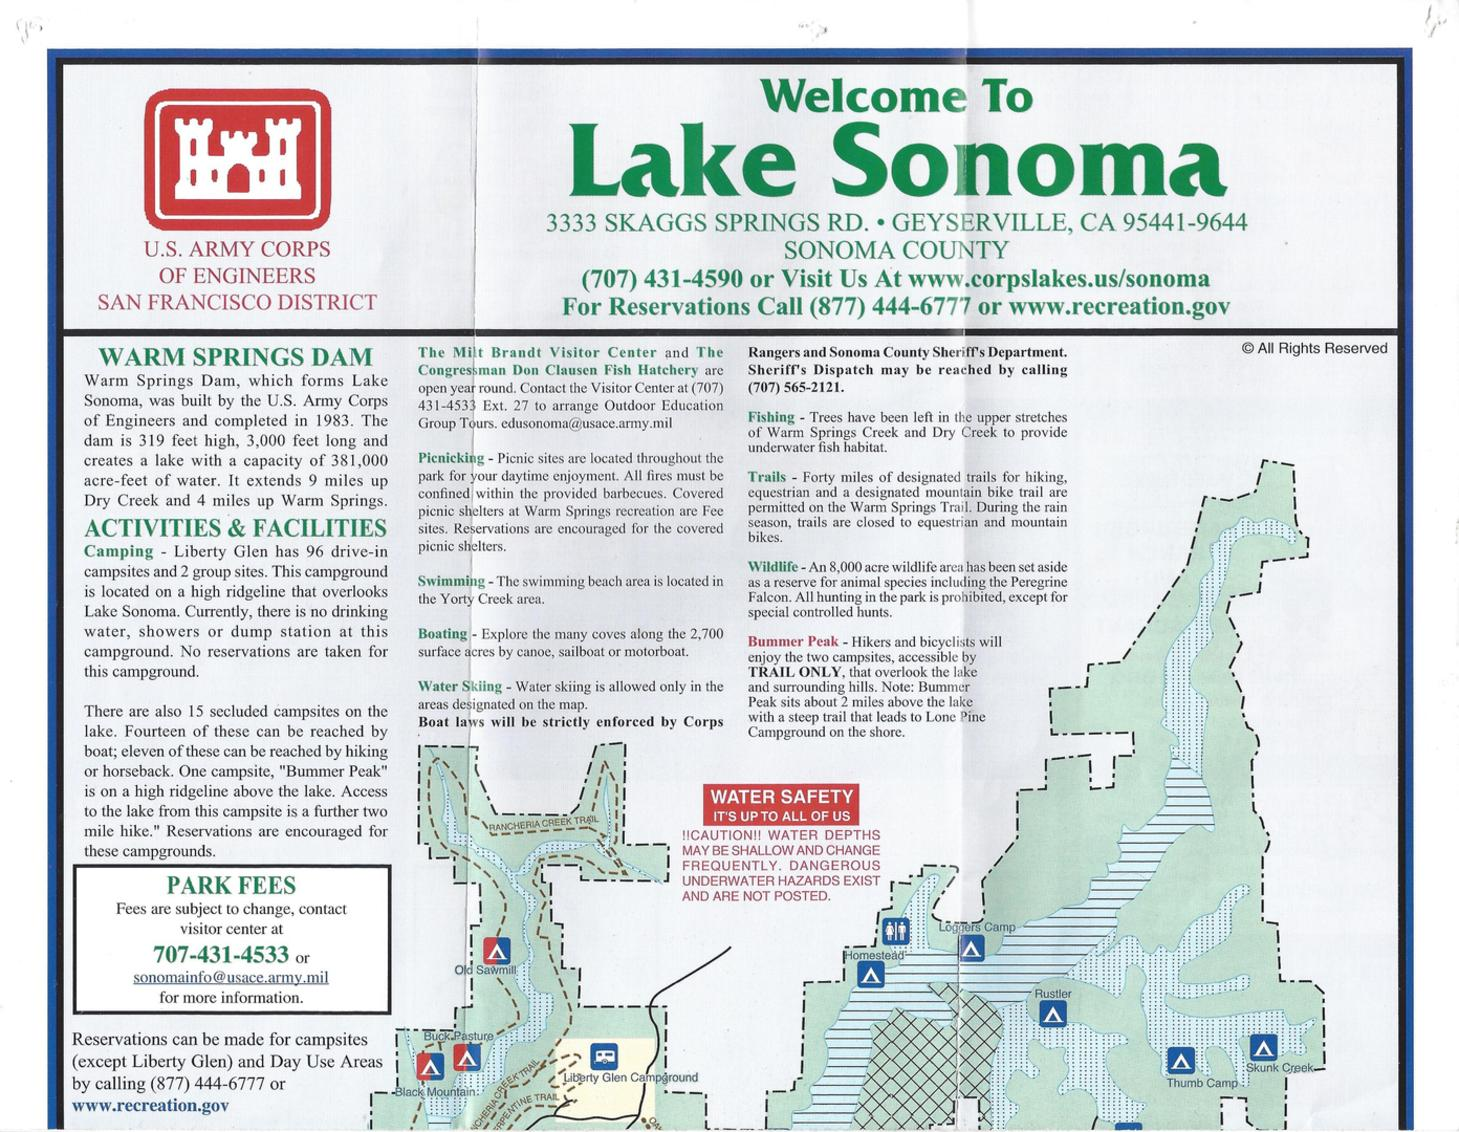 Camping directions for California 1 day fishing license